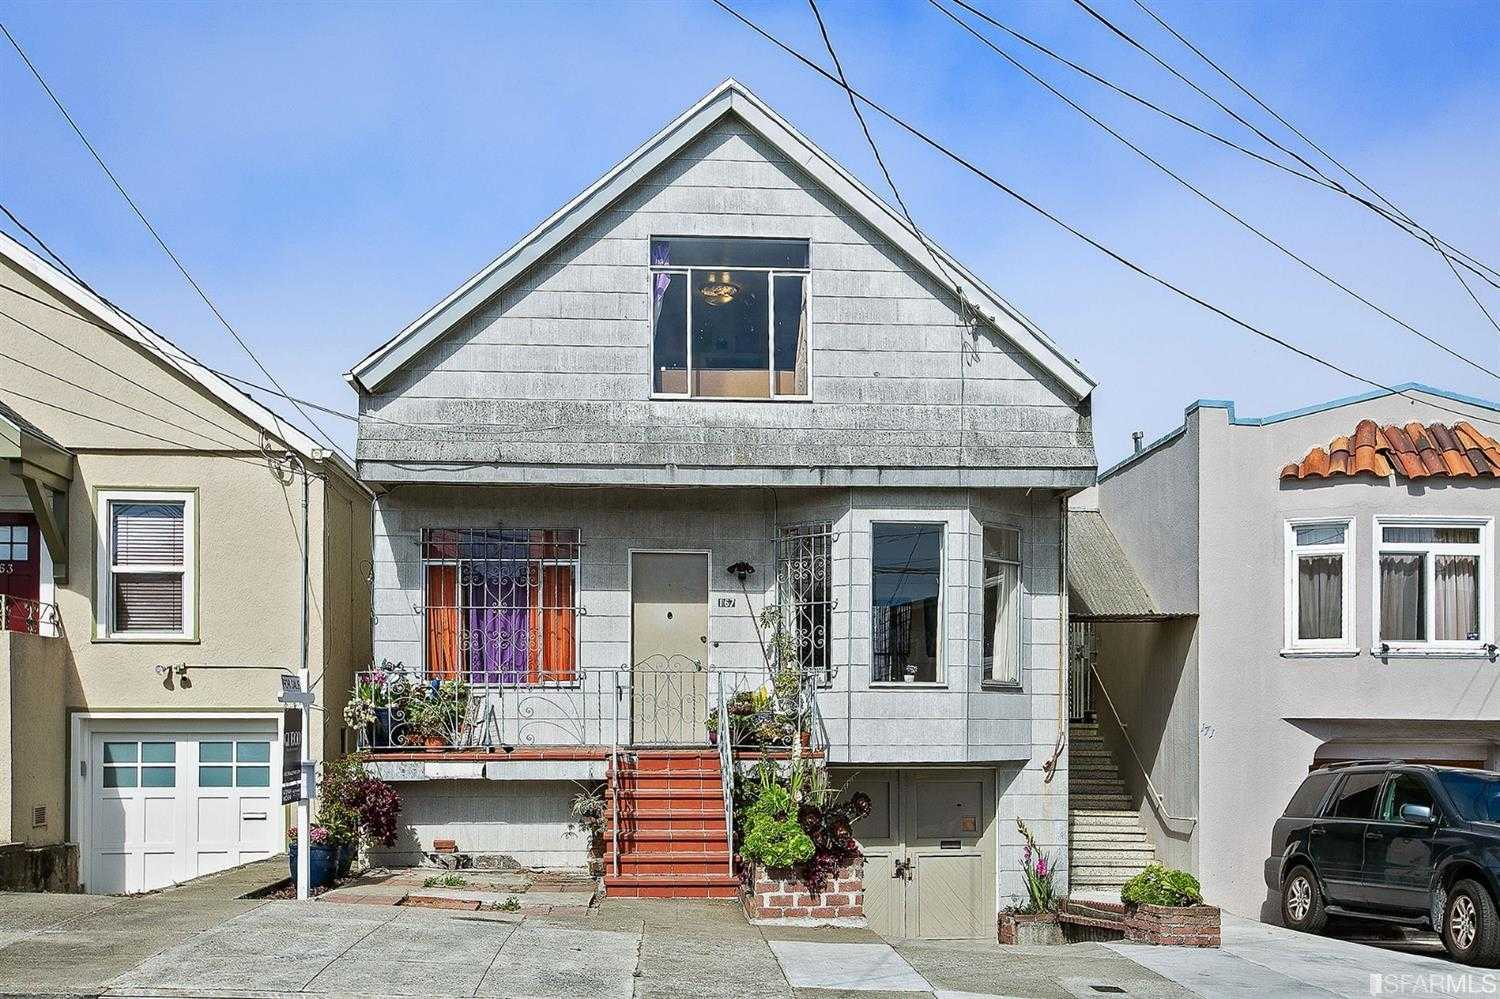 167 Miramar Ave San Francisco, CA 94112